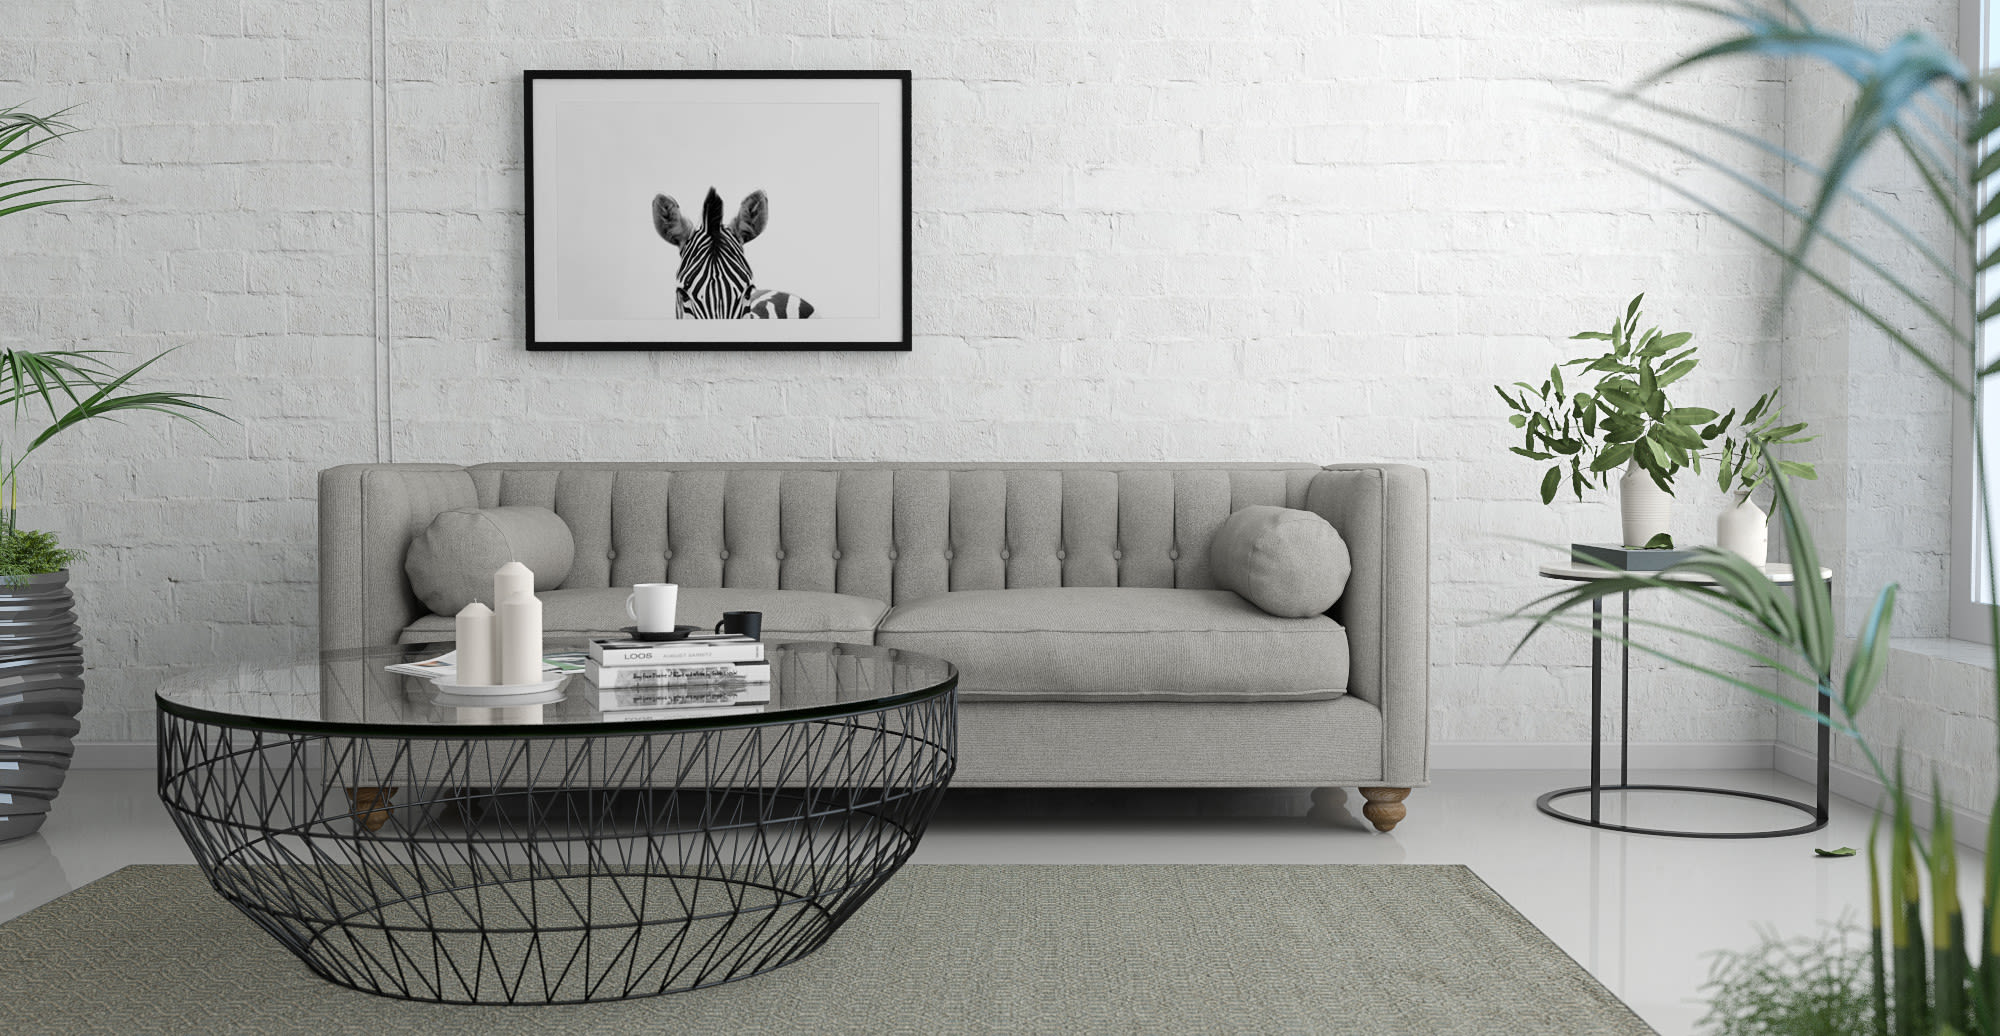 Brosa Animal wall art in Contemporary styled Living Room